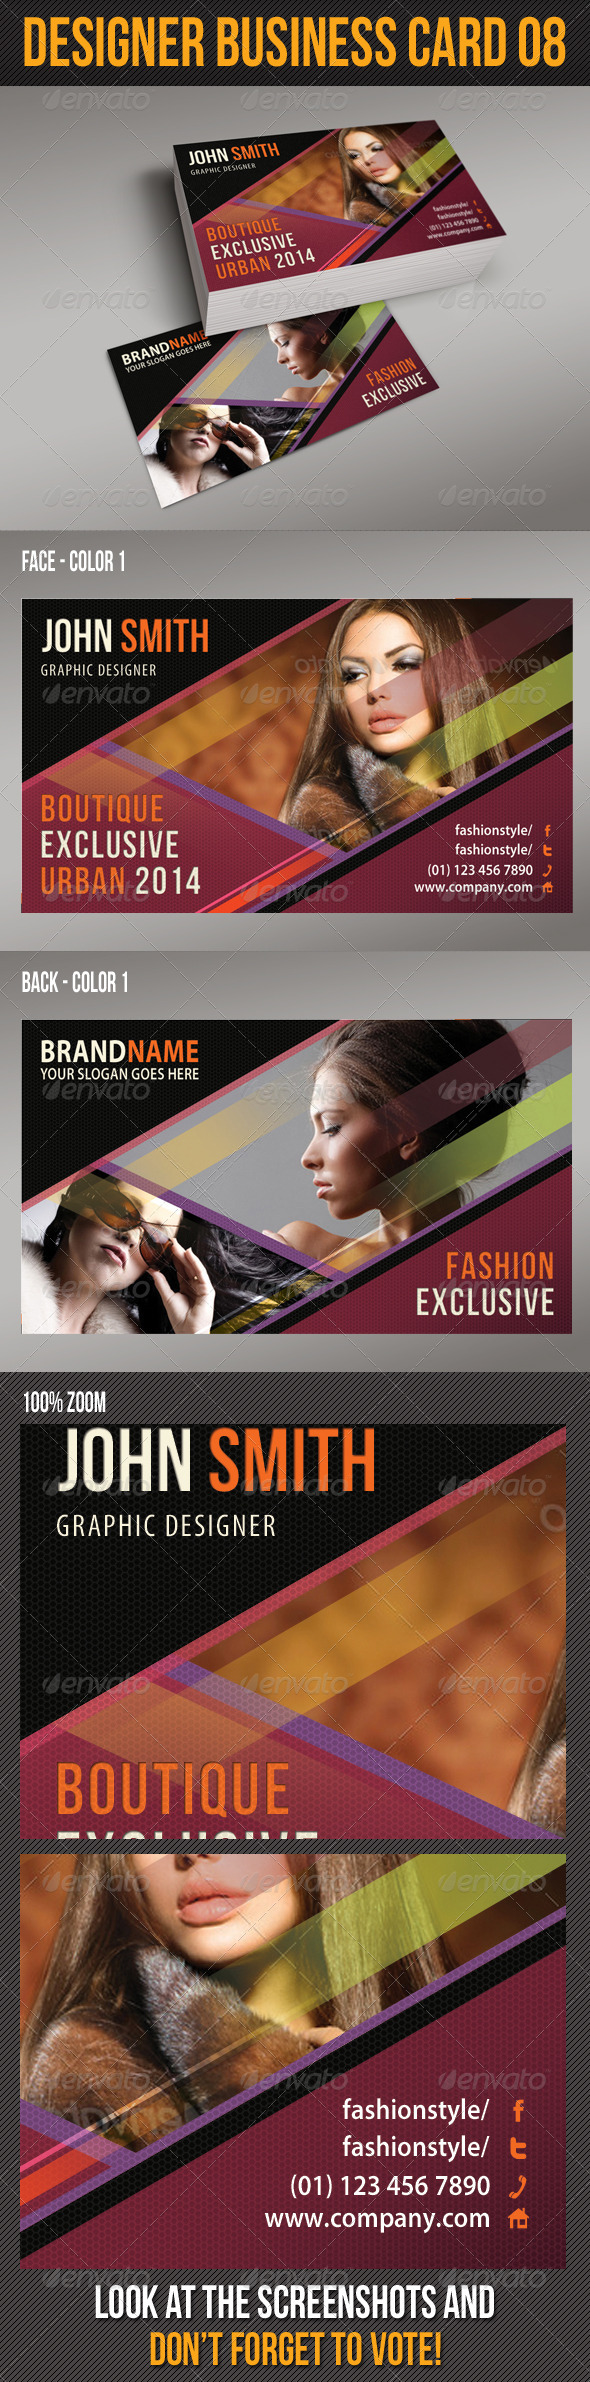 Designer Business Card 09 - Creative Business Cards